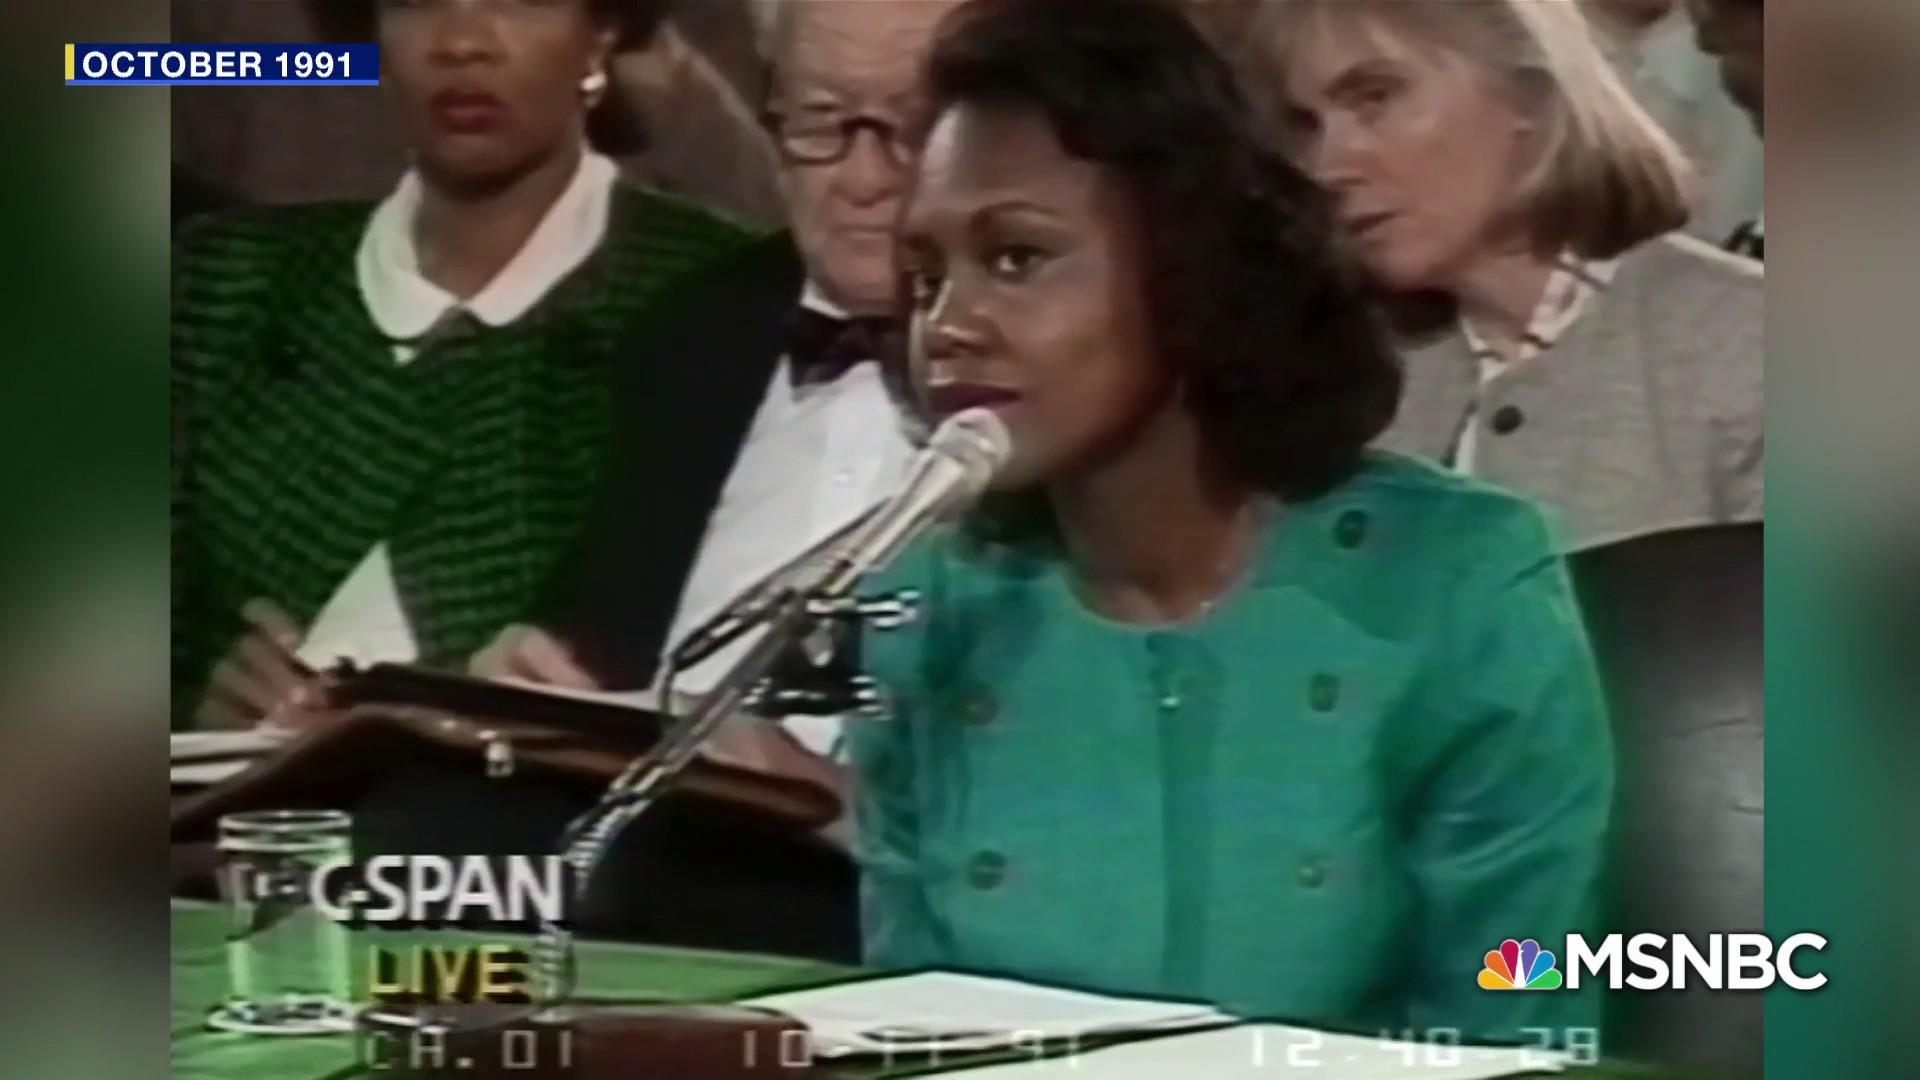 David Brock: Ford is going to face some things more challenging than Anita Hill